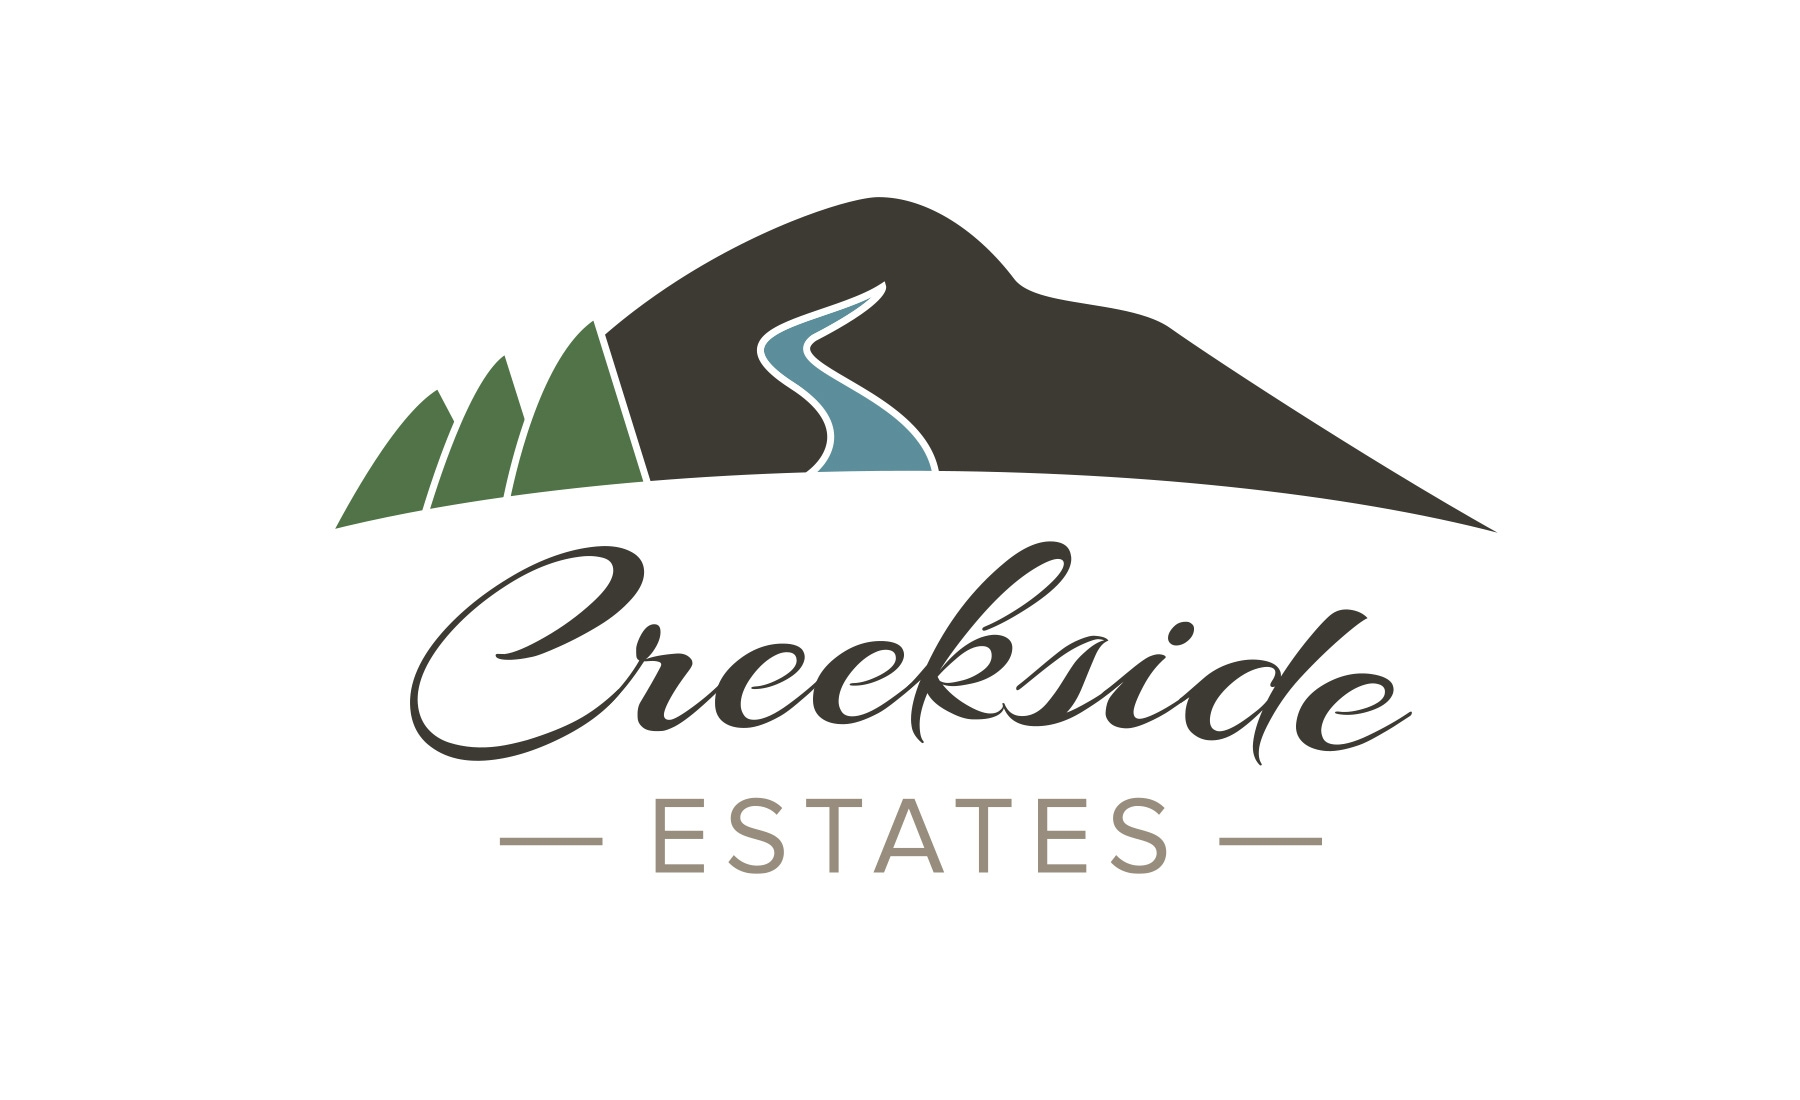 Creekside Estates logo